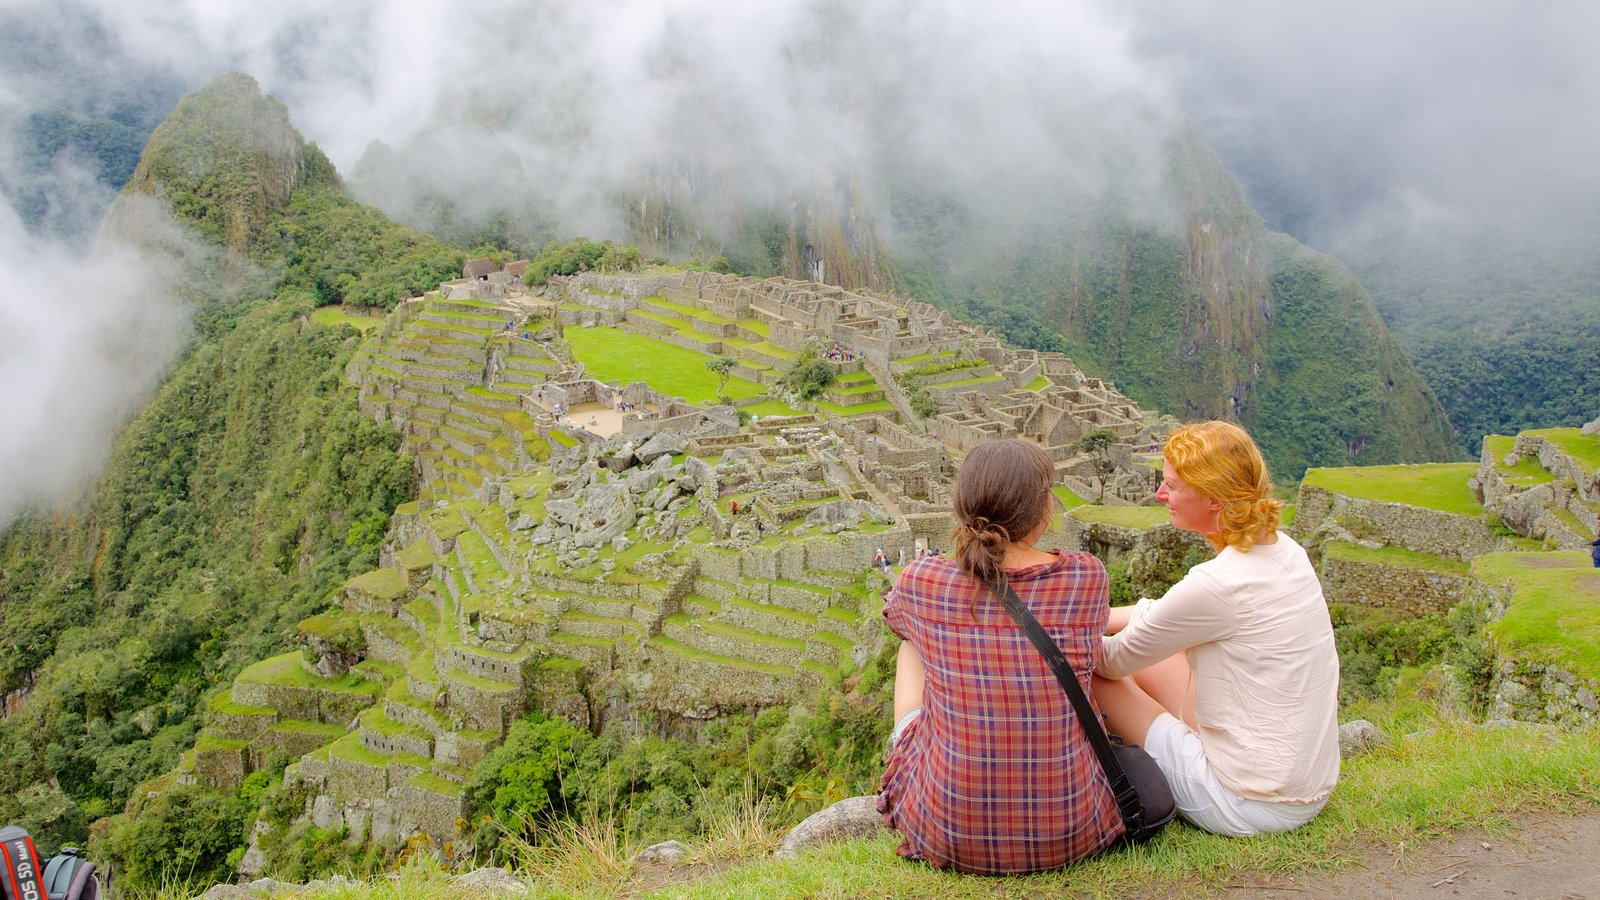 Machu Picchu which includes landscape views as well as a small group of people